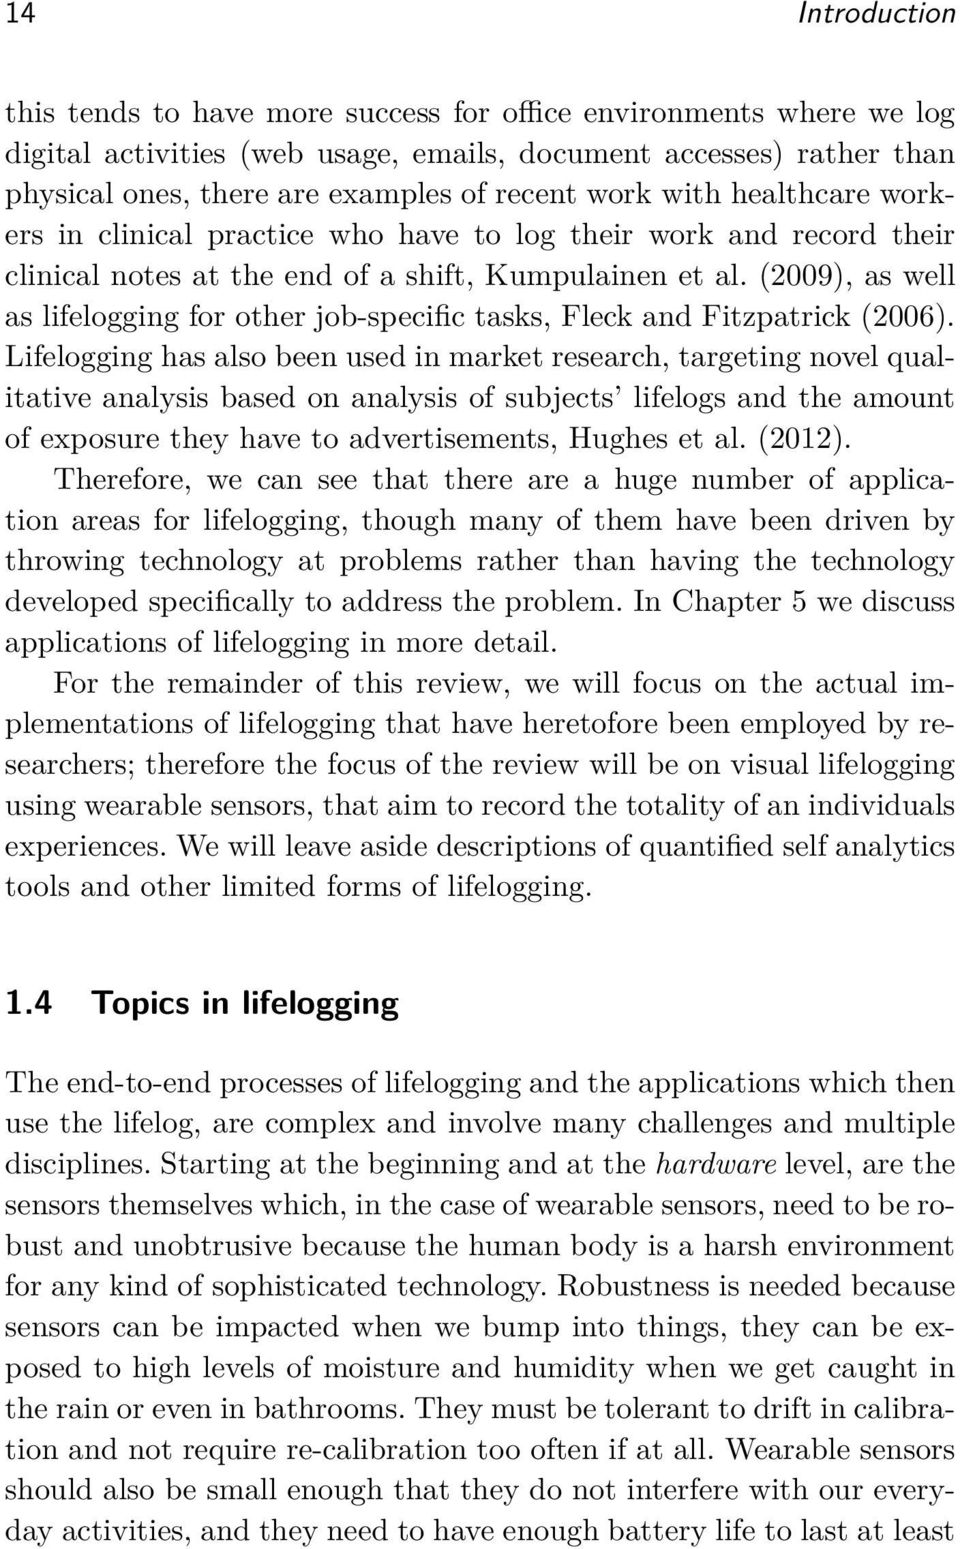 (2009), as well as lifelogging for other job-specific tasks, Fleck and Fitzpatrick (2006).